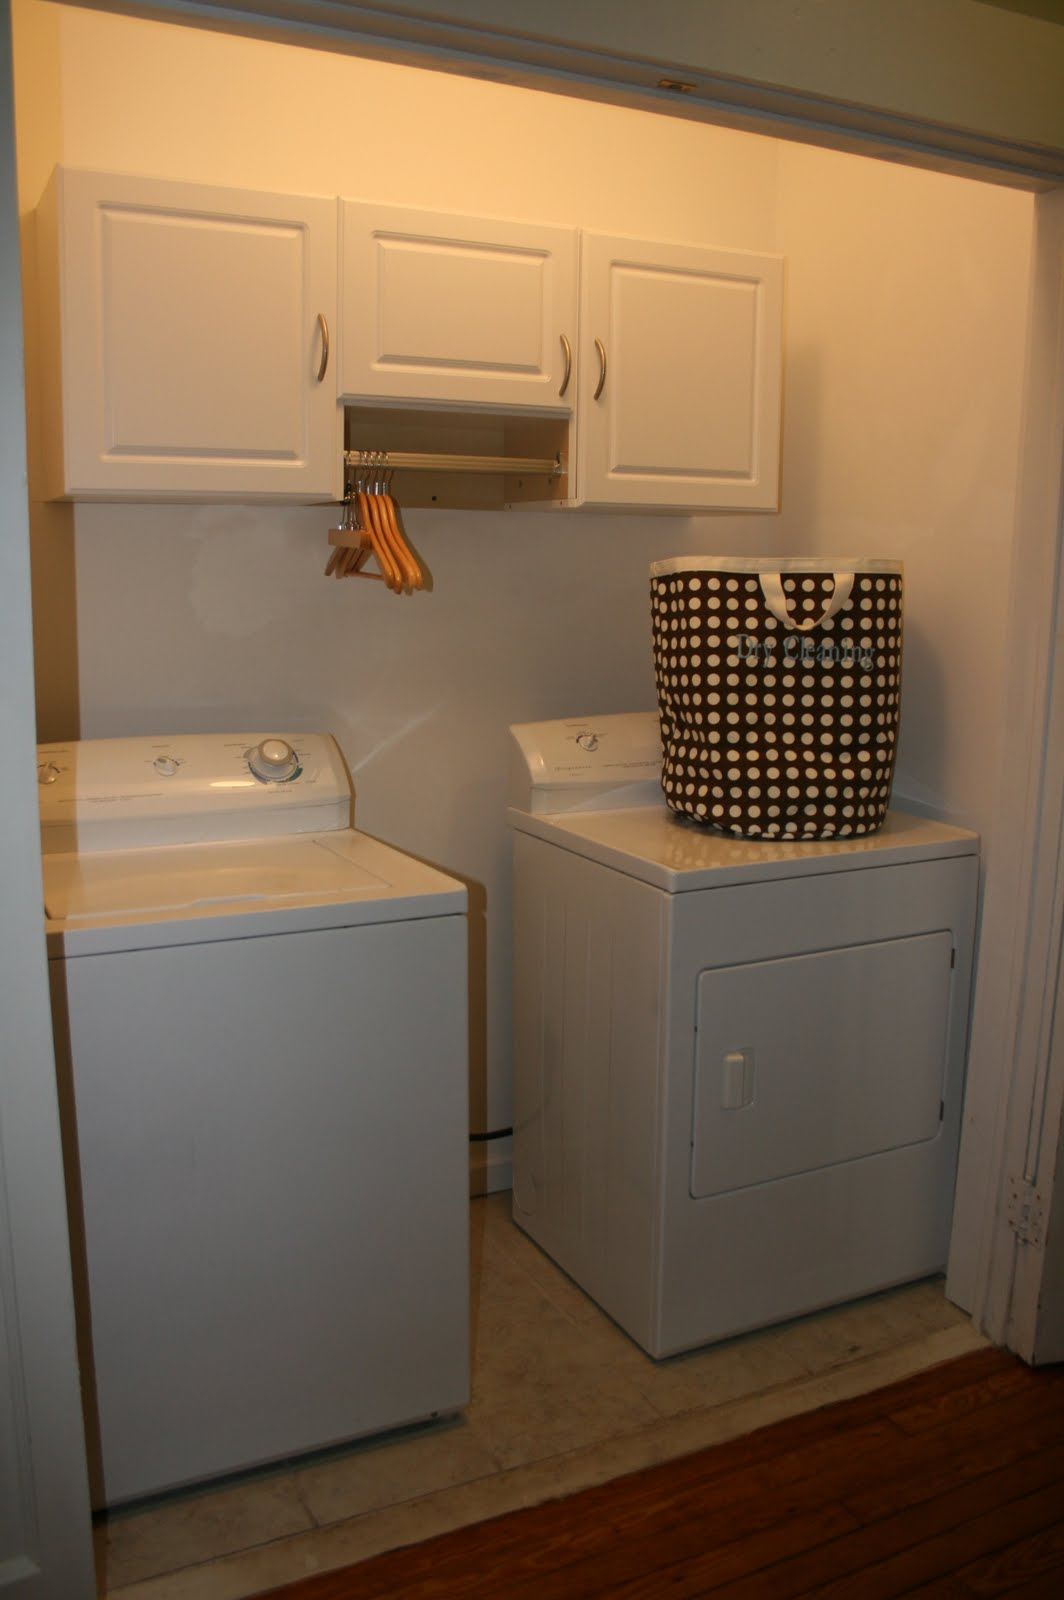 Organize Washer And Dryer Closet